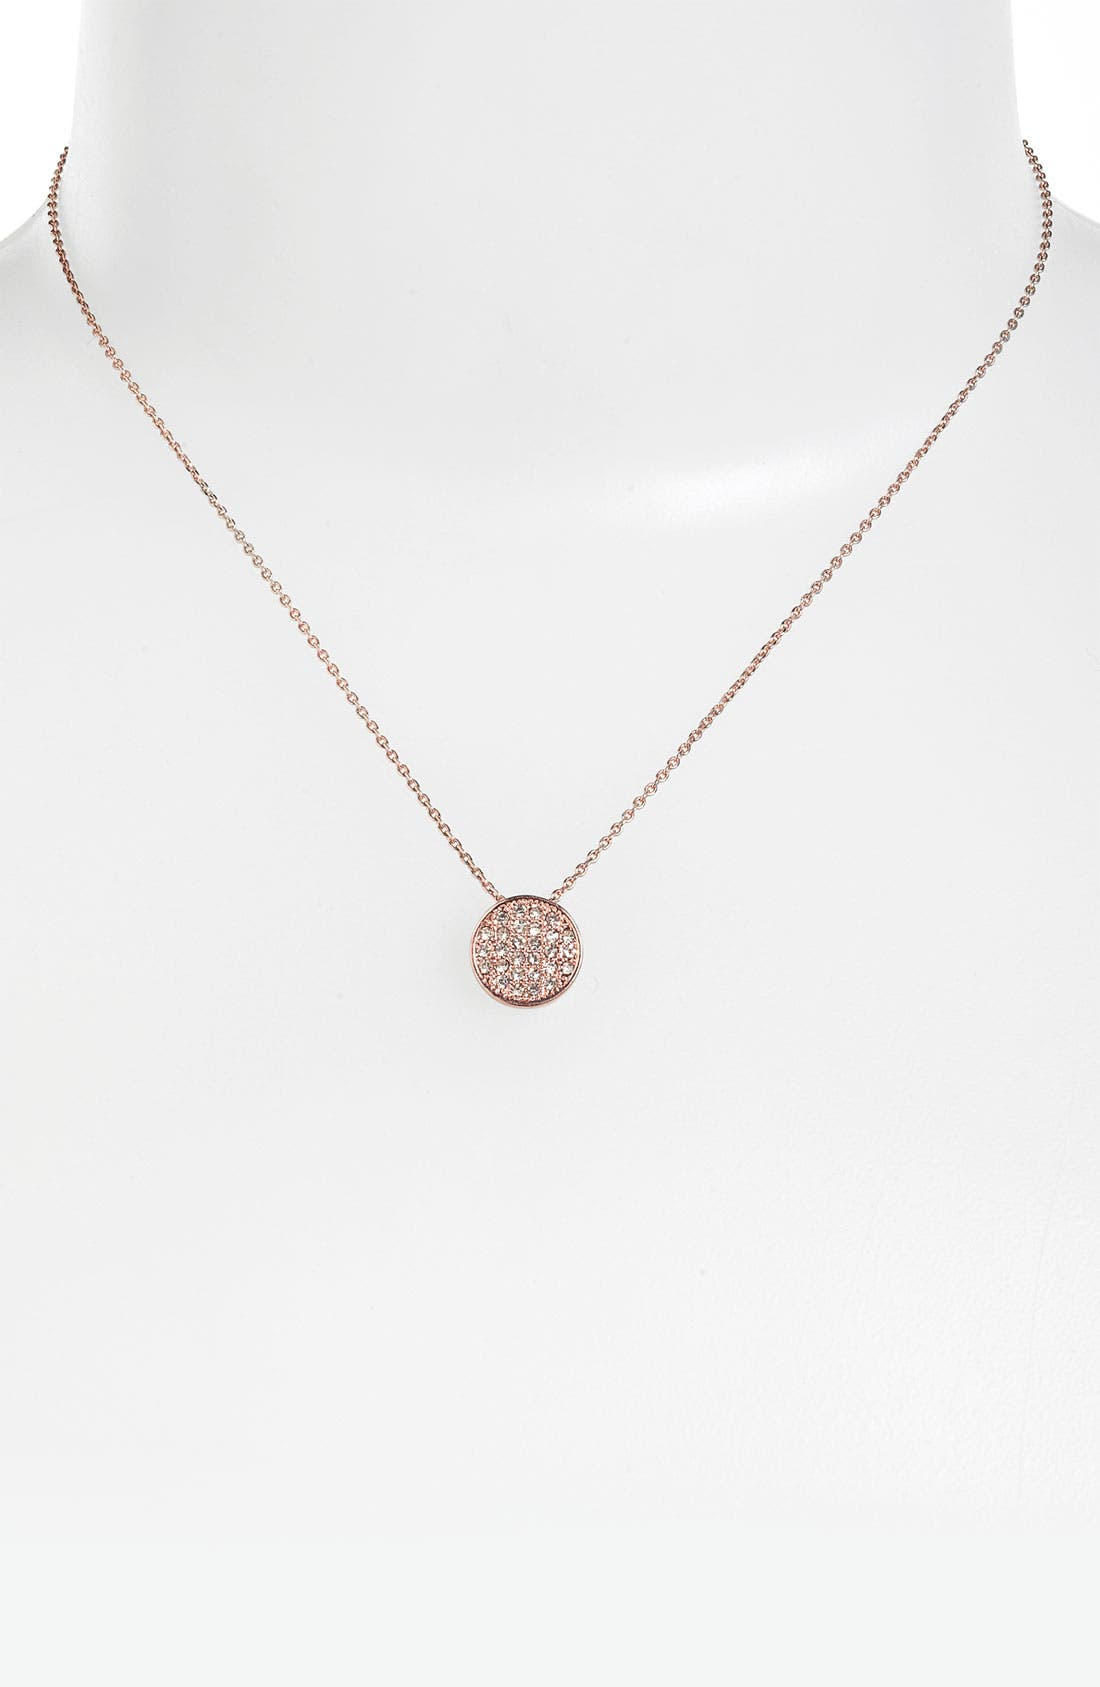 Main Image - Stephan & Co. Pavé Circle Pendant Necklace